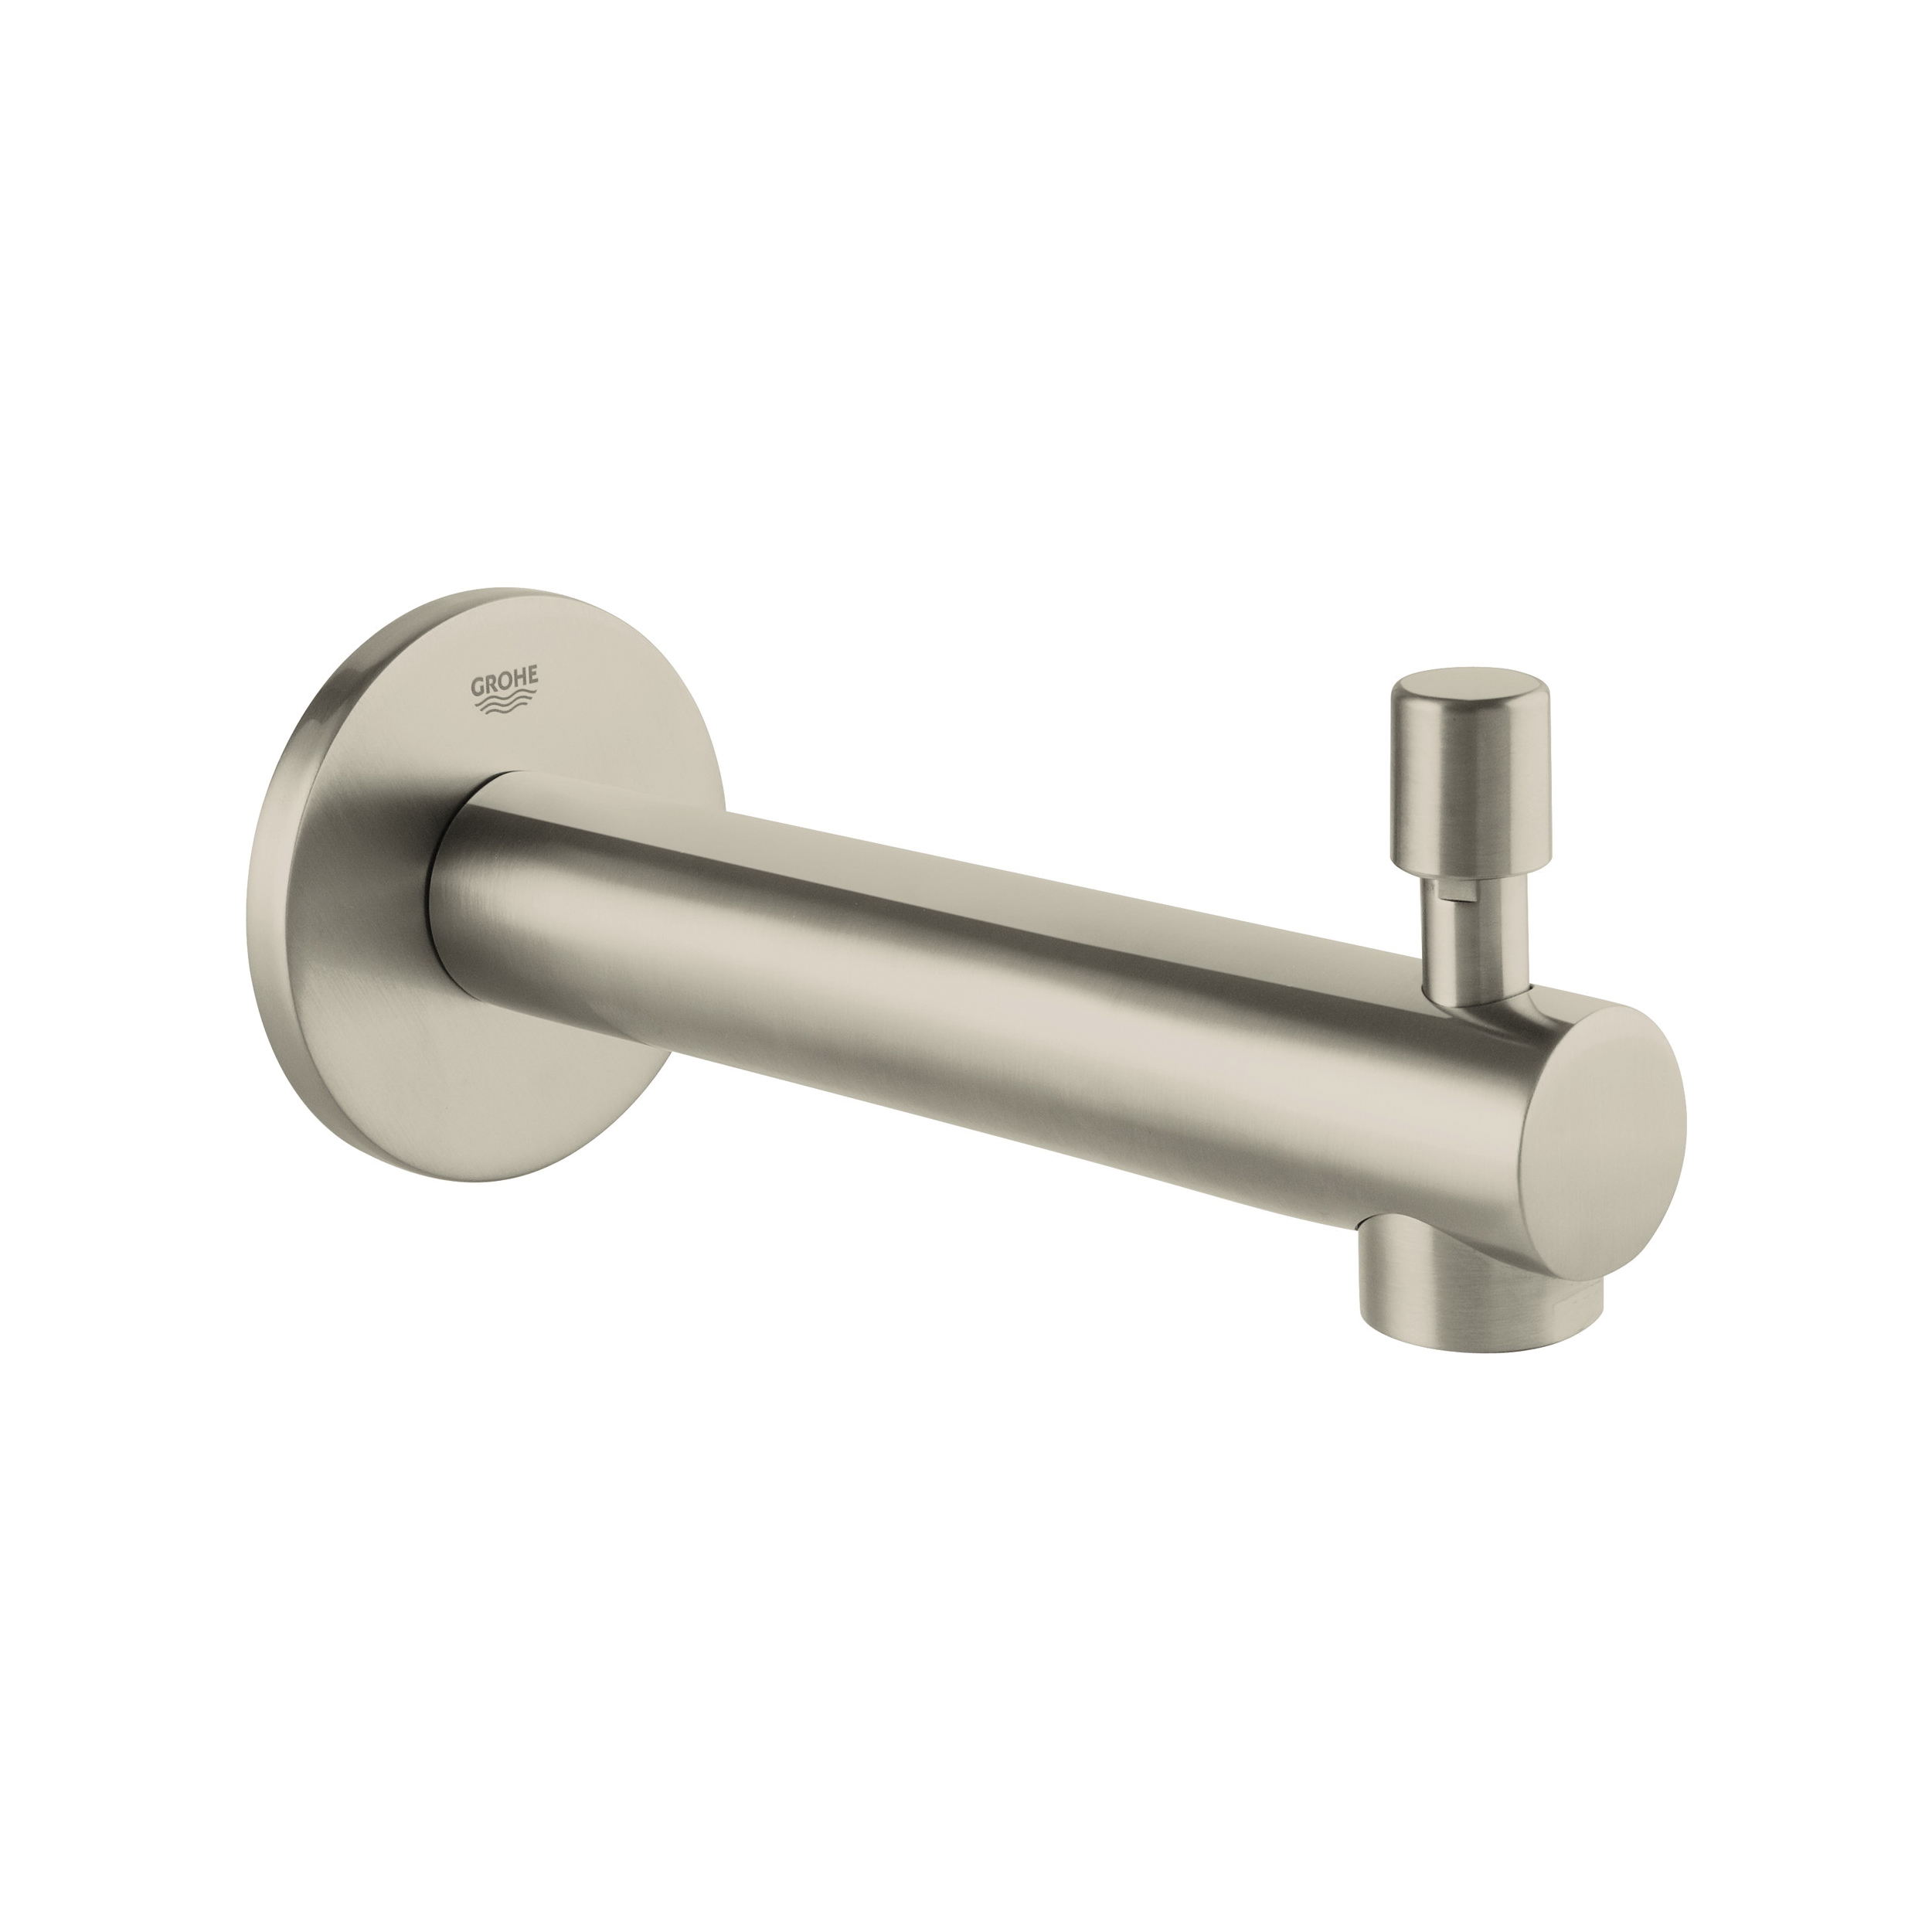 GROHE 13275EN1 Concetto Tub Spout, 6-11/16 in L, 1/2 in FNPT Connection, Brass, Brushed Nickel, Import